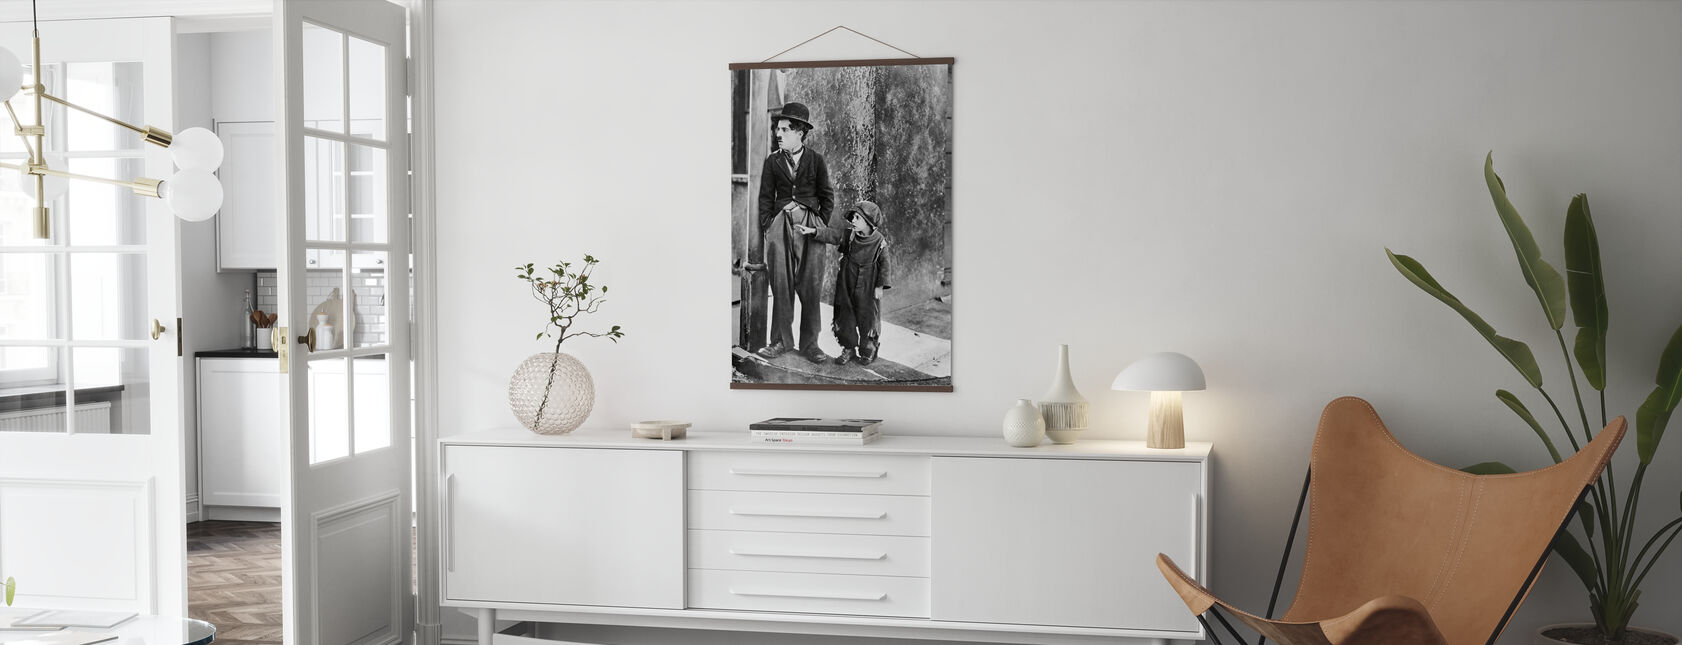 Charlie Chaplin e Jackie Coogan in the Kid - Poster - Salotto